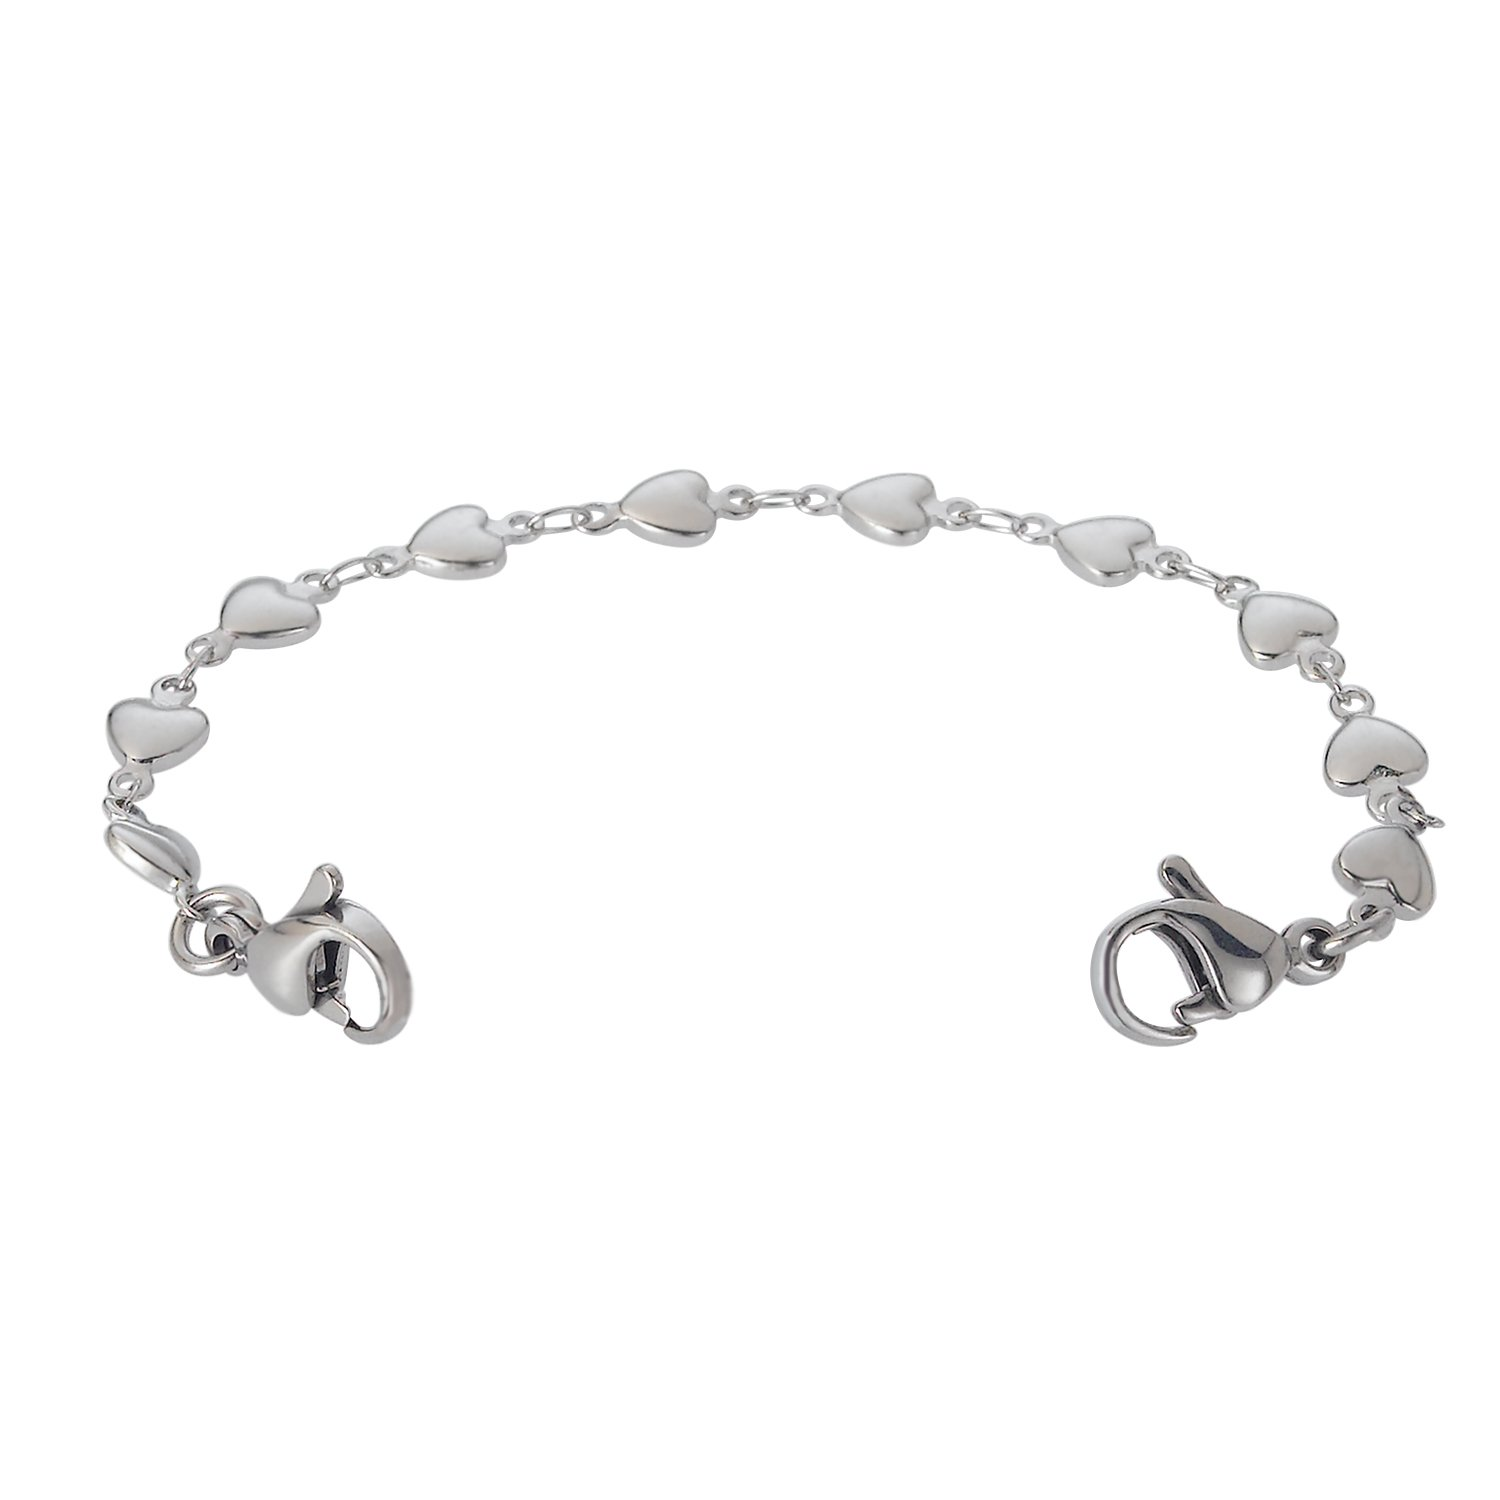 Divoti Heart Link Stainless Medical Alert Replacement Bracelet -6.5''